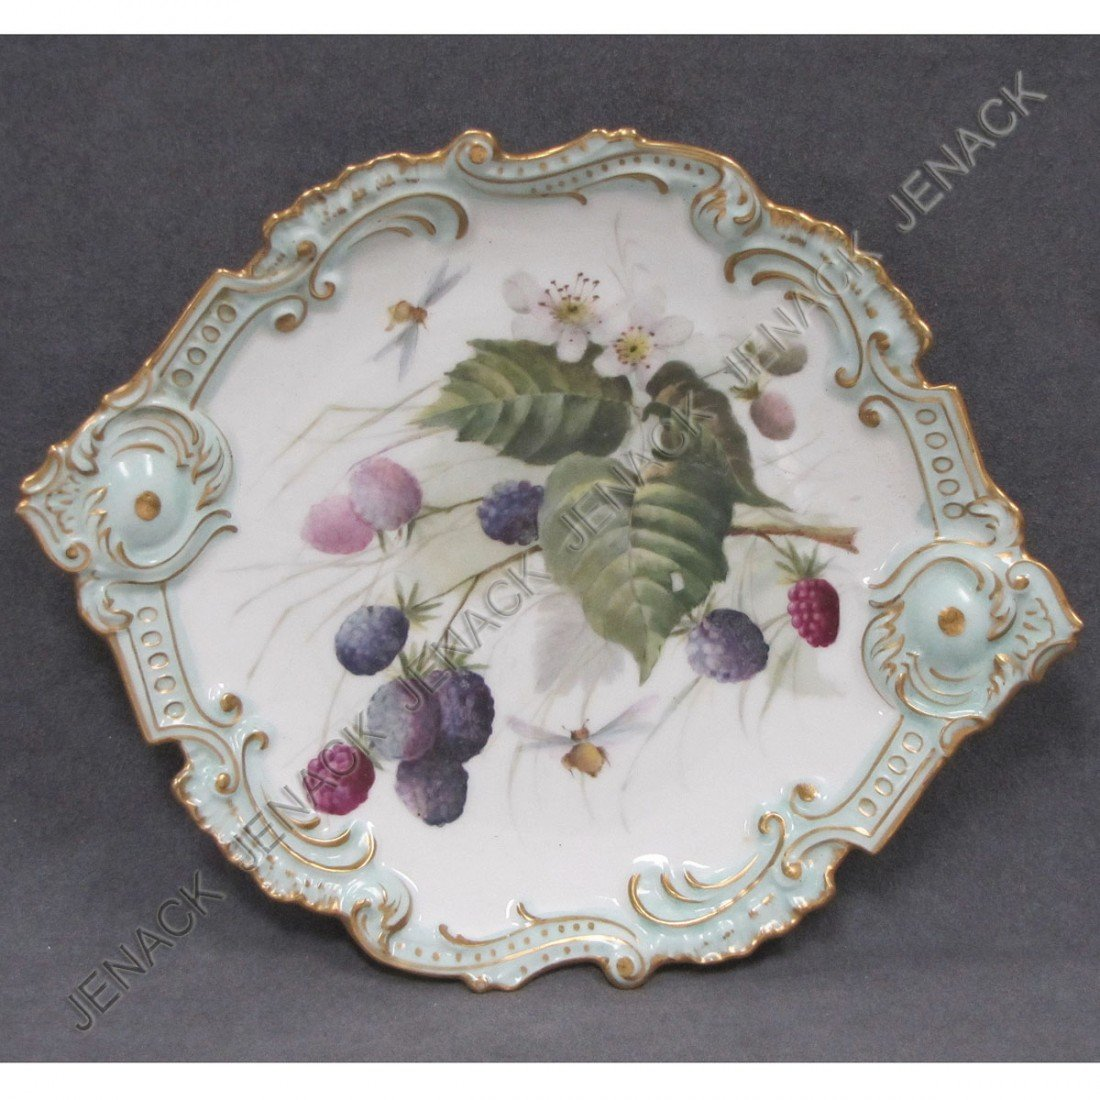 9: FRENCH LIMOGES DECORATED CAKE PLATE